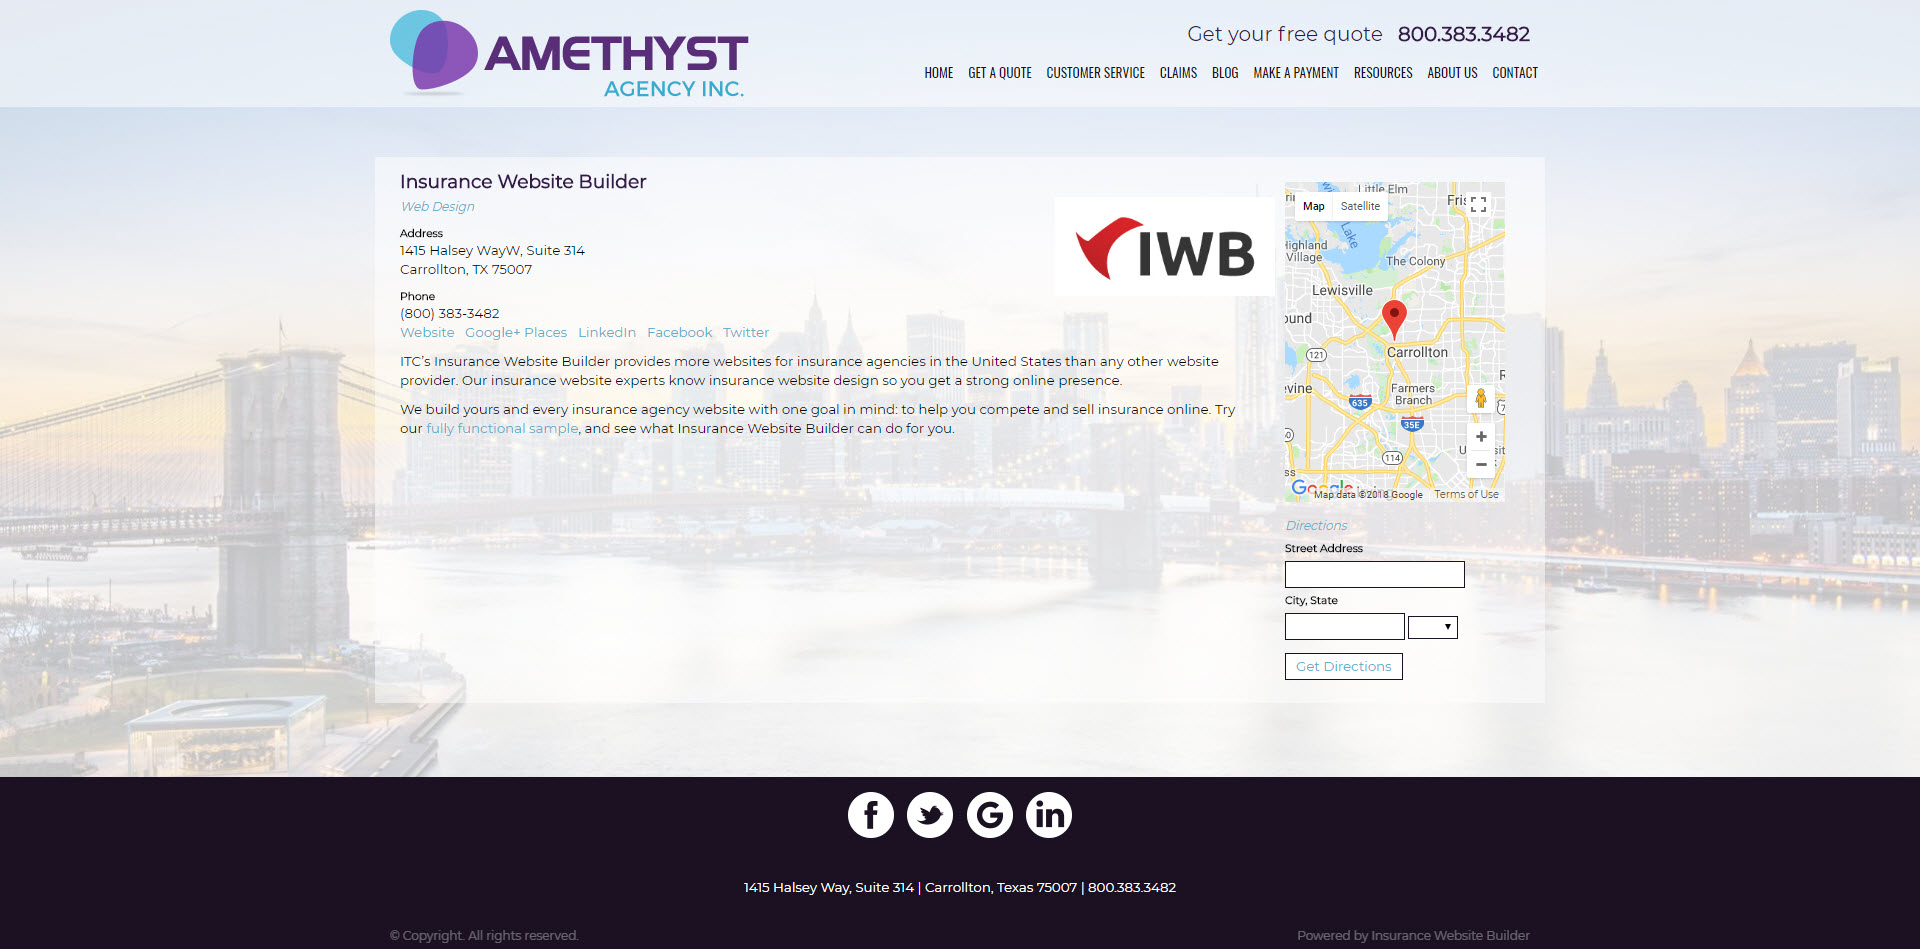 amethyst partner page screenshot insurance website builder